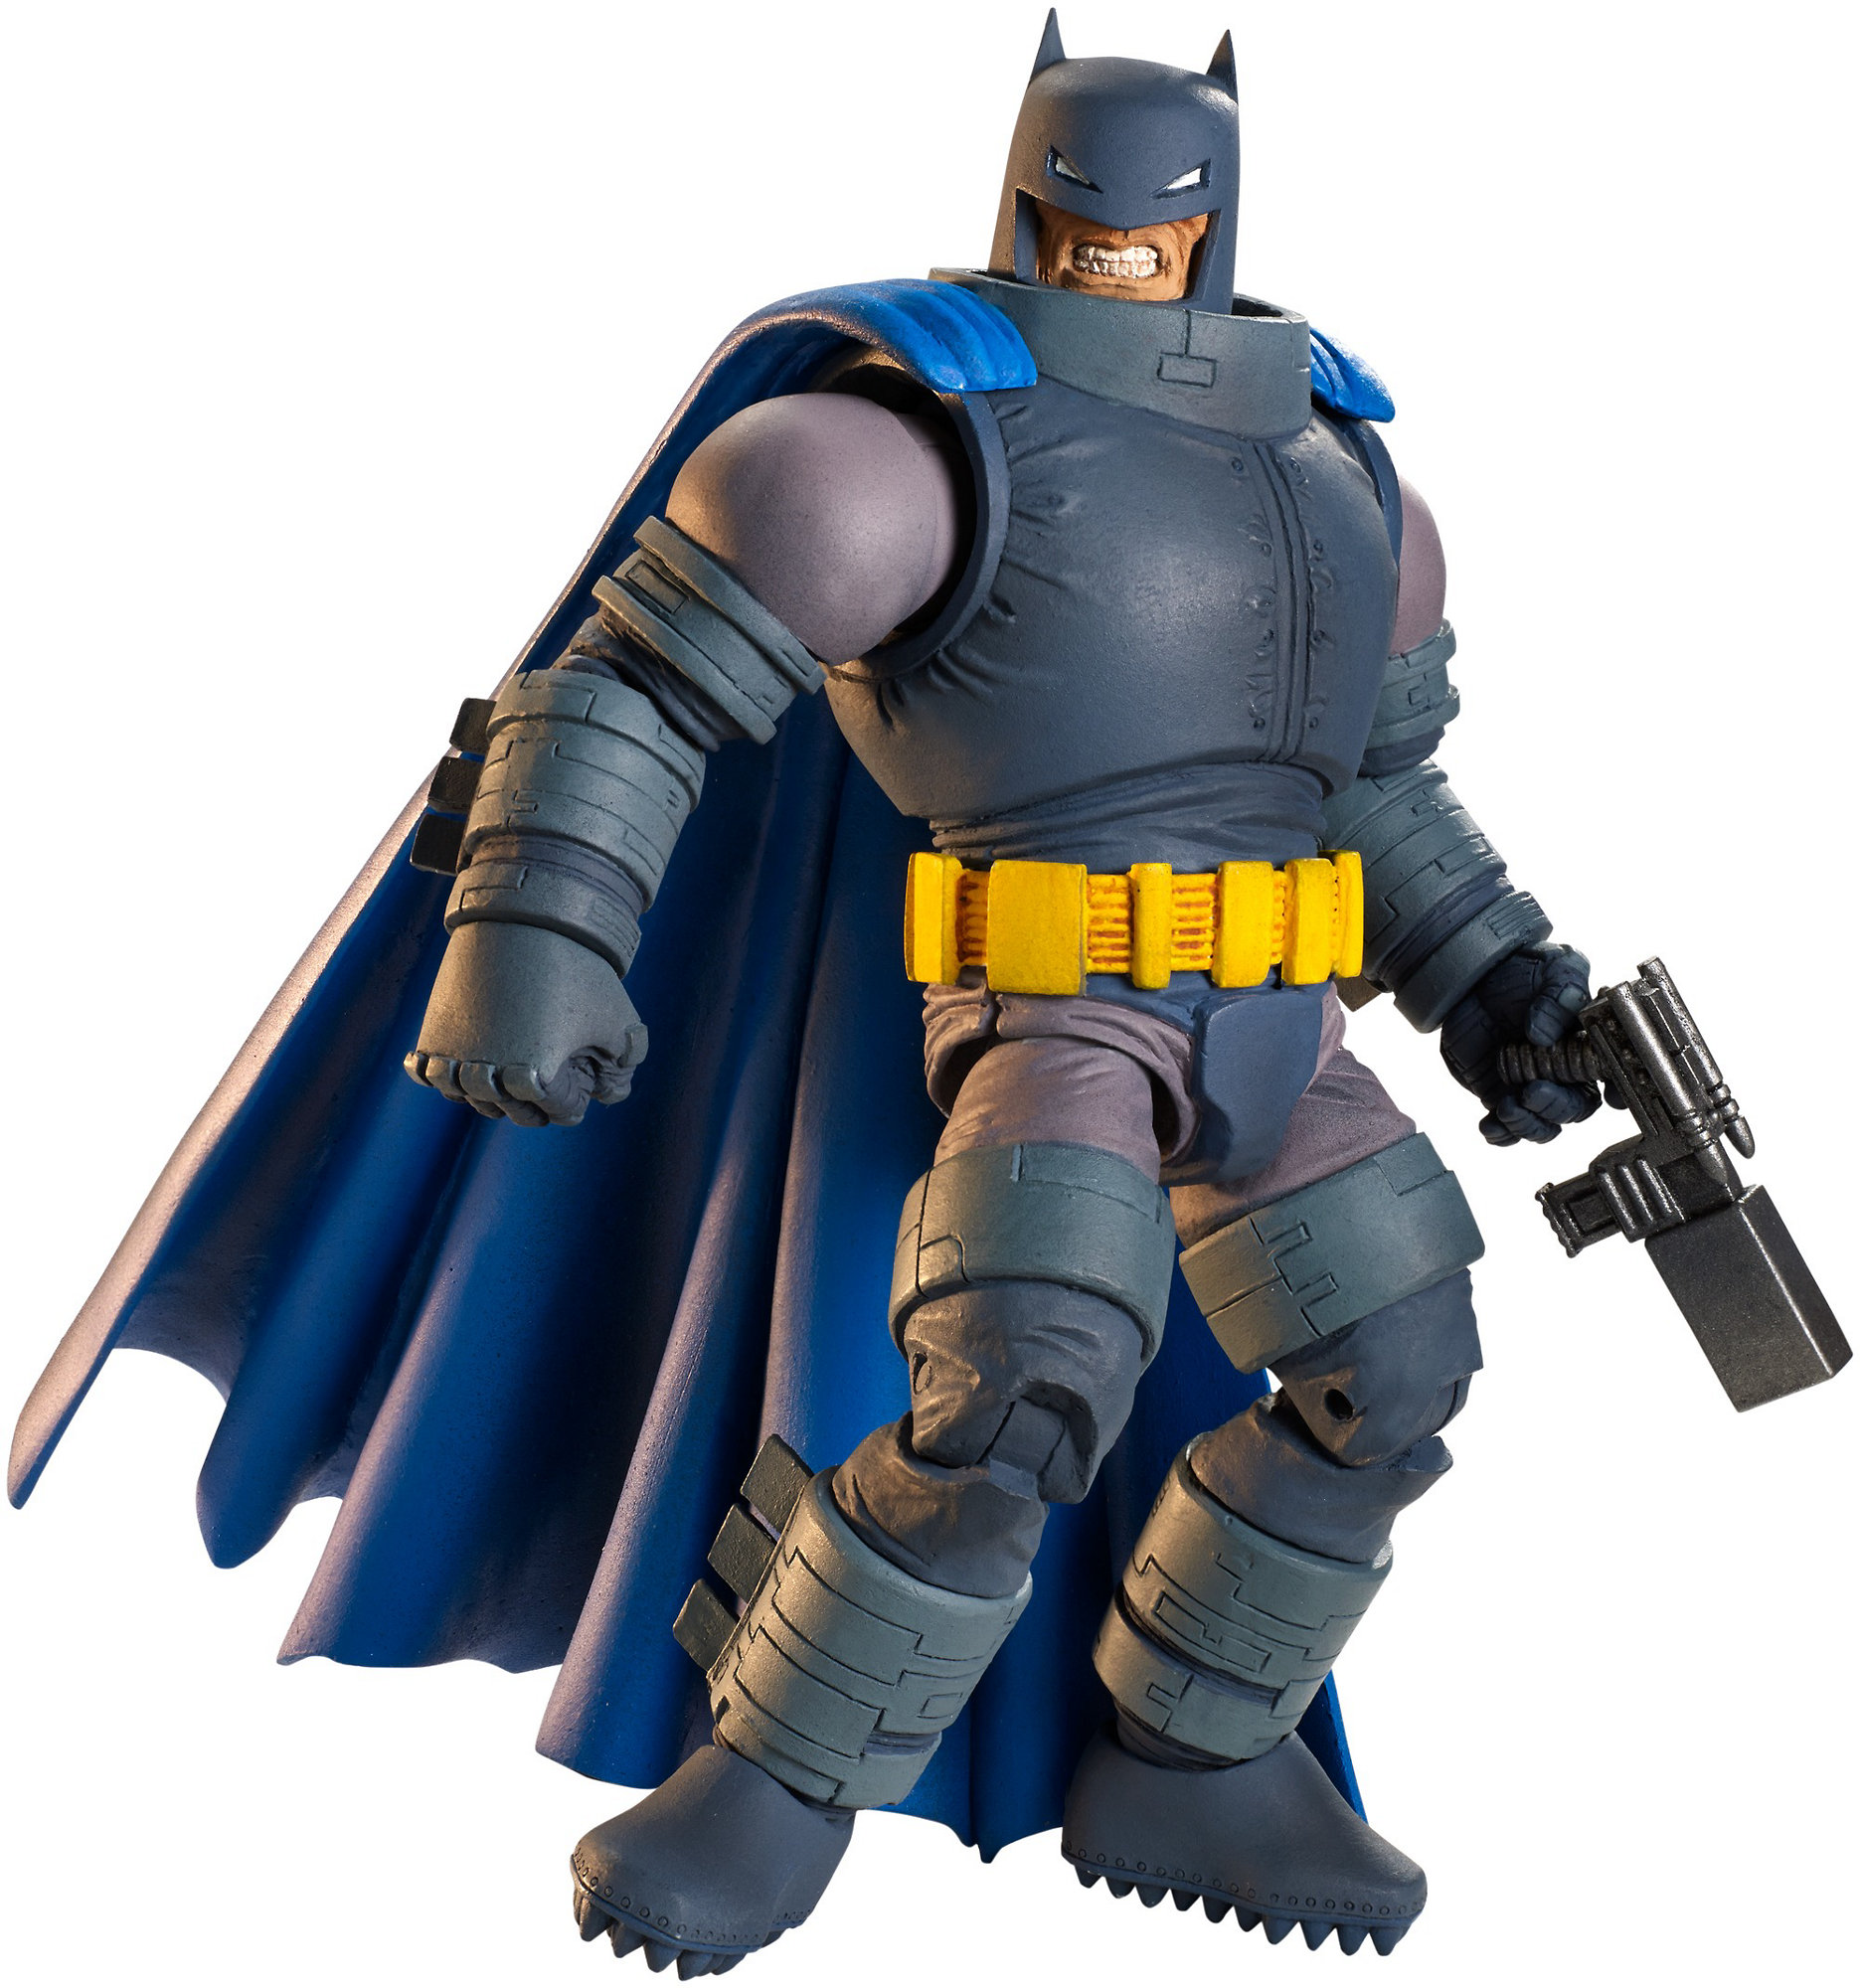 DC Comics Batman The Dark Knight Returns Armored Batman Figure